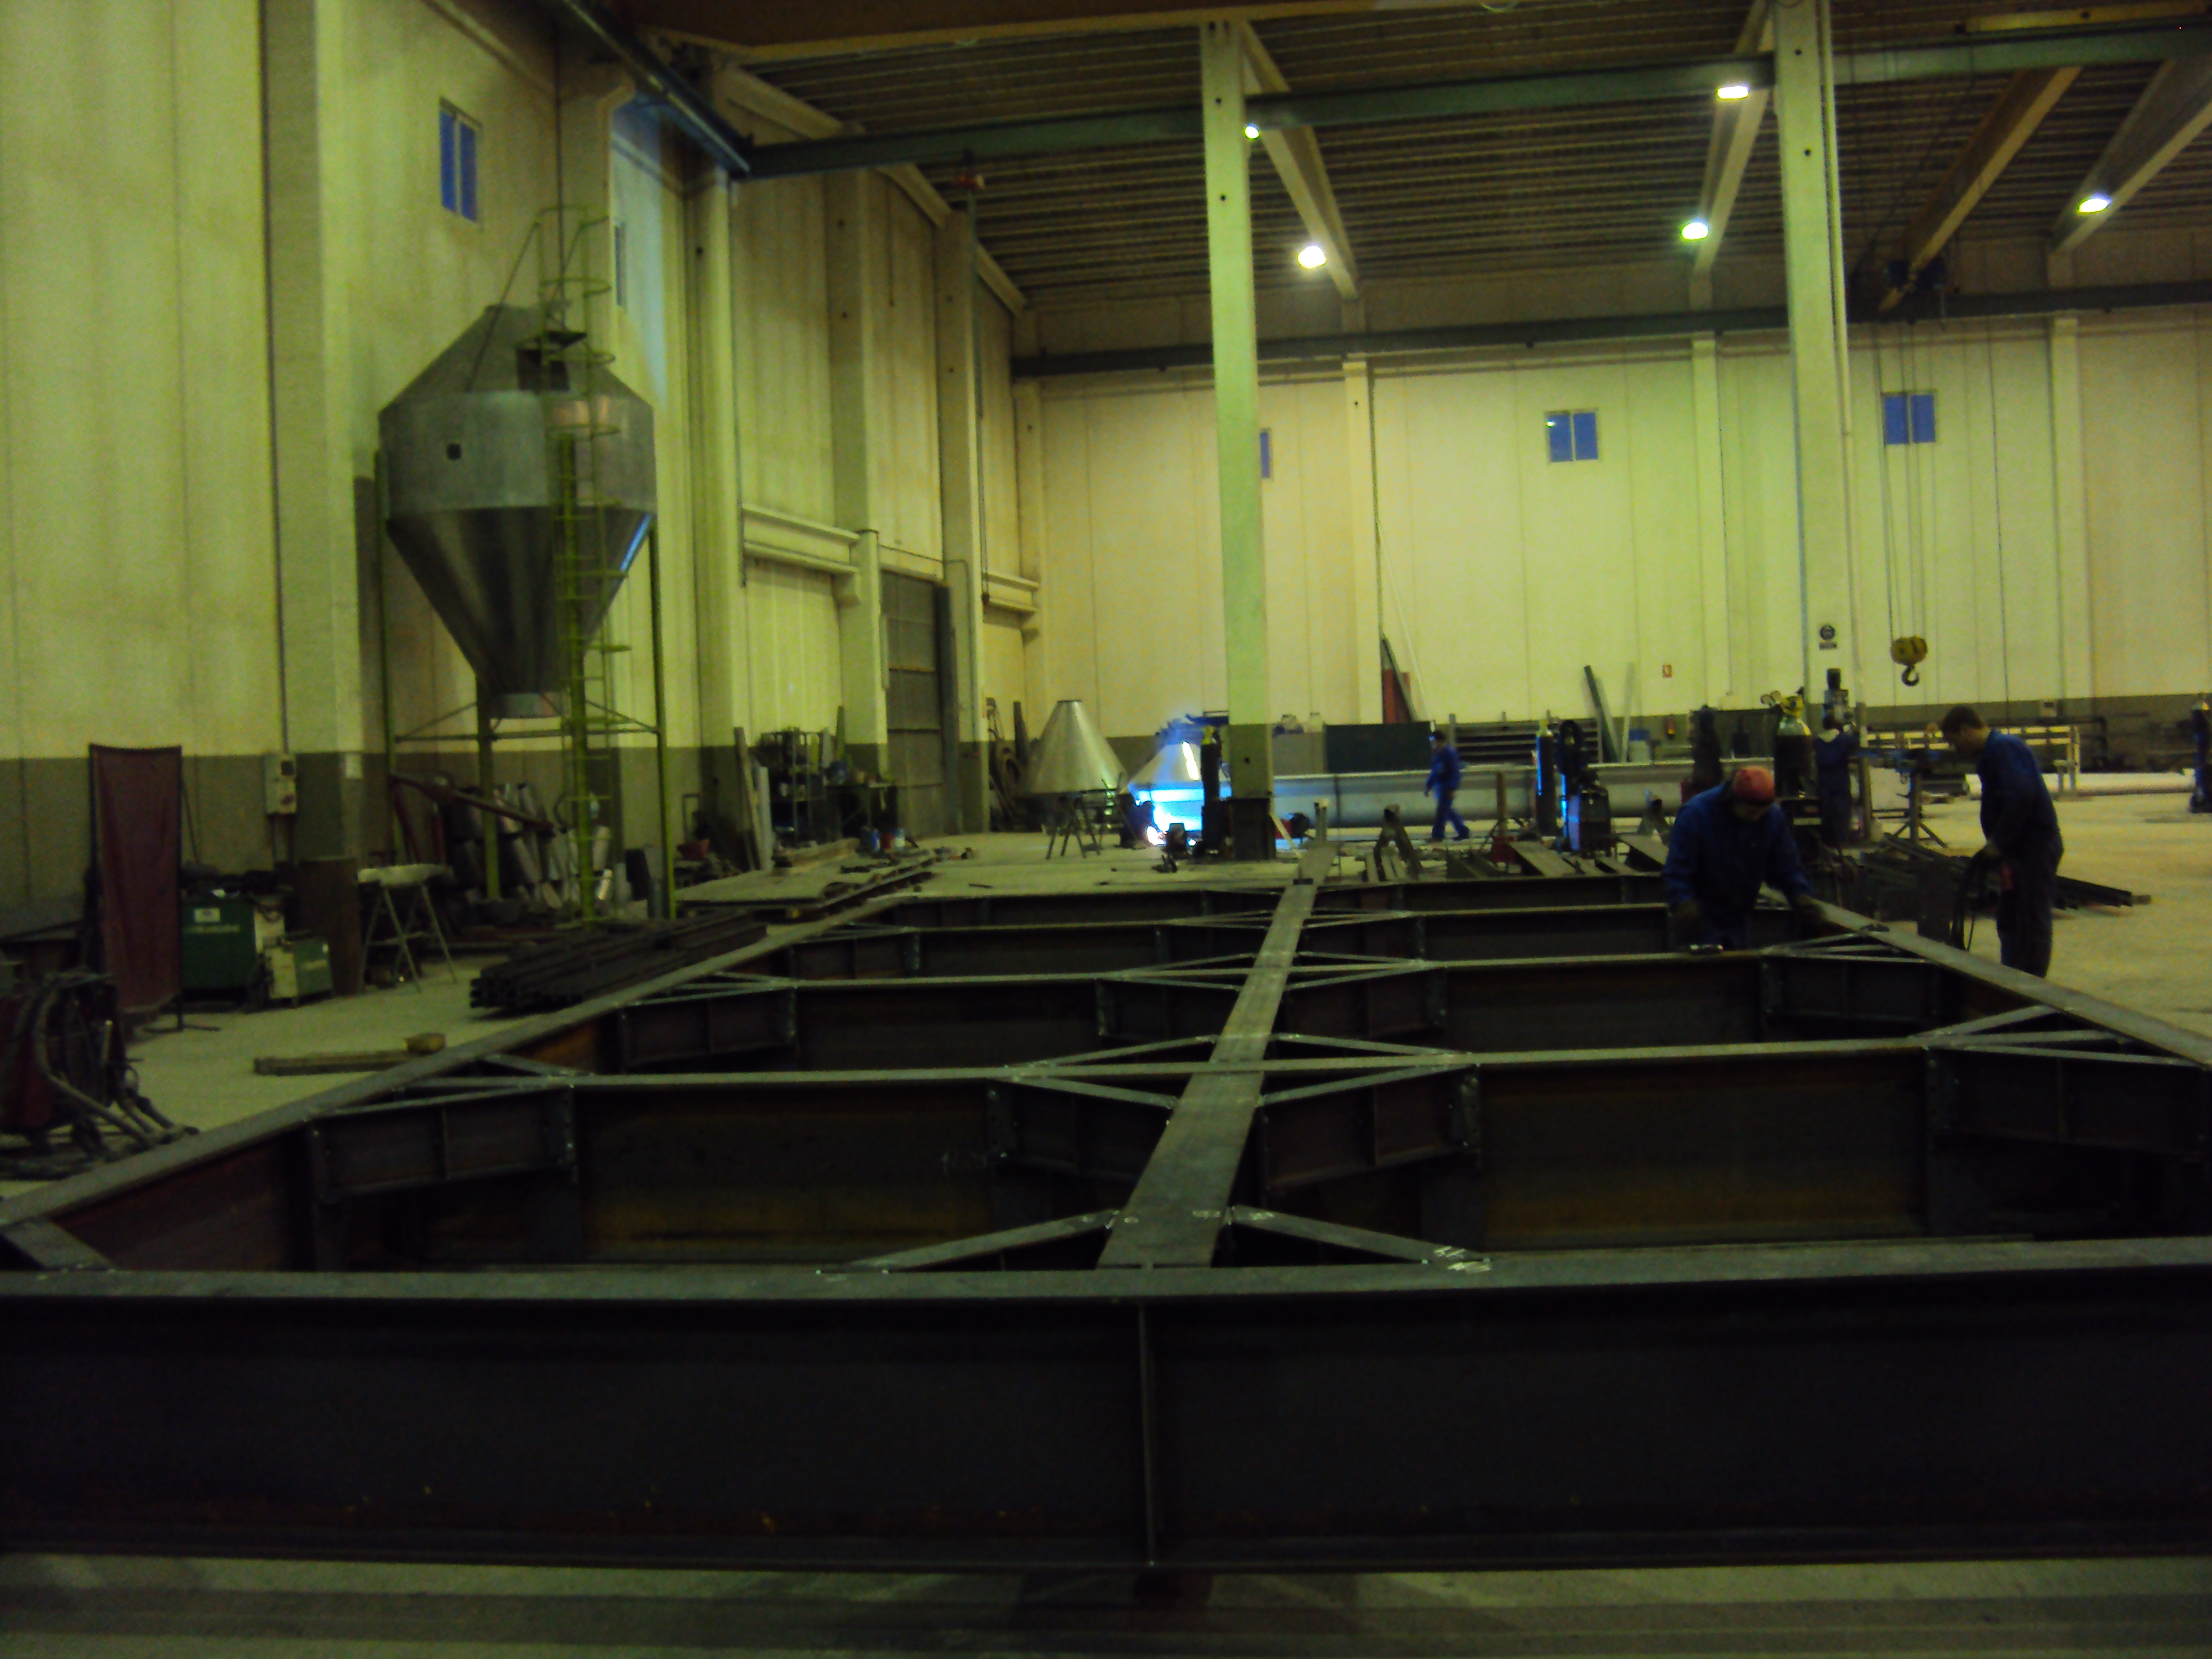 Pre-assembly of structure in workshops